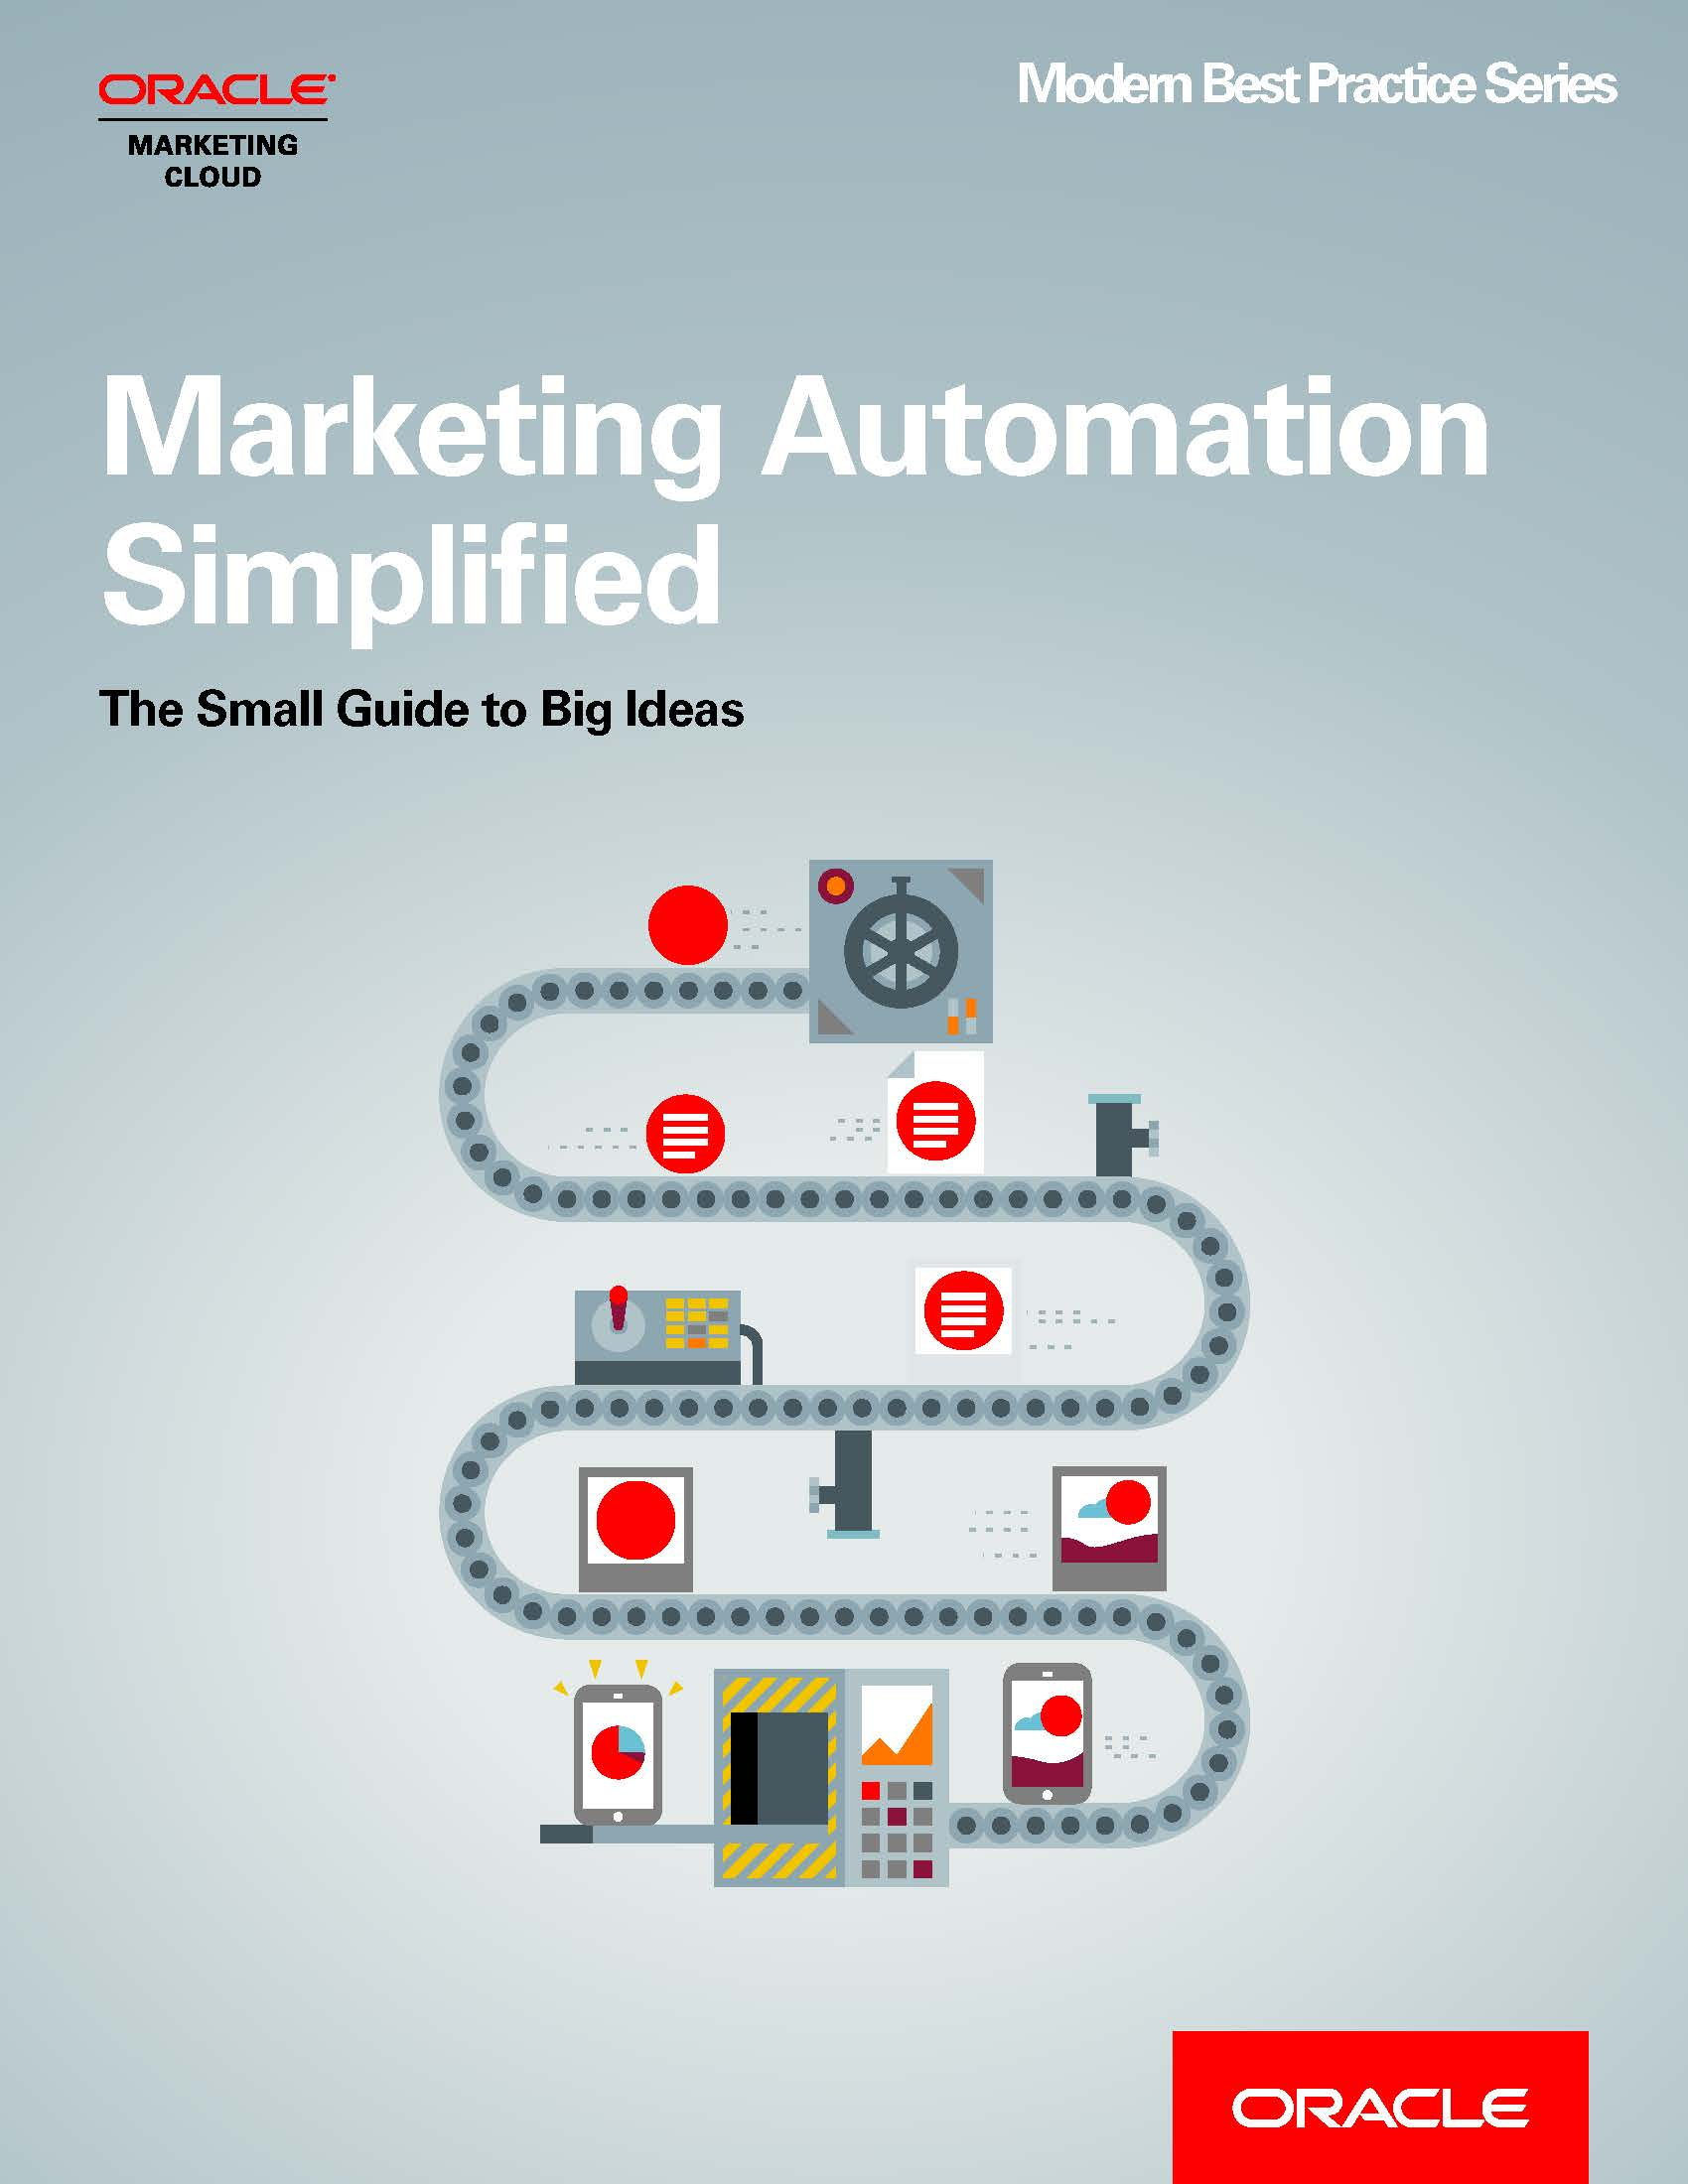 Marketing Automation Simplified